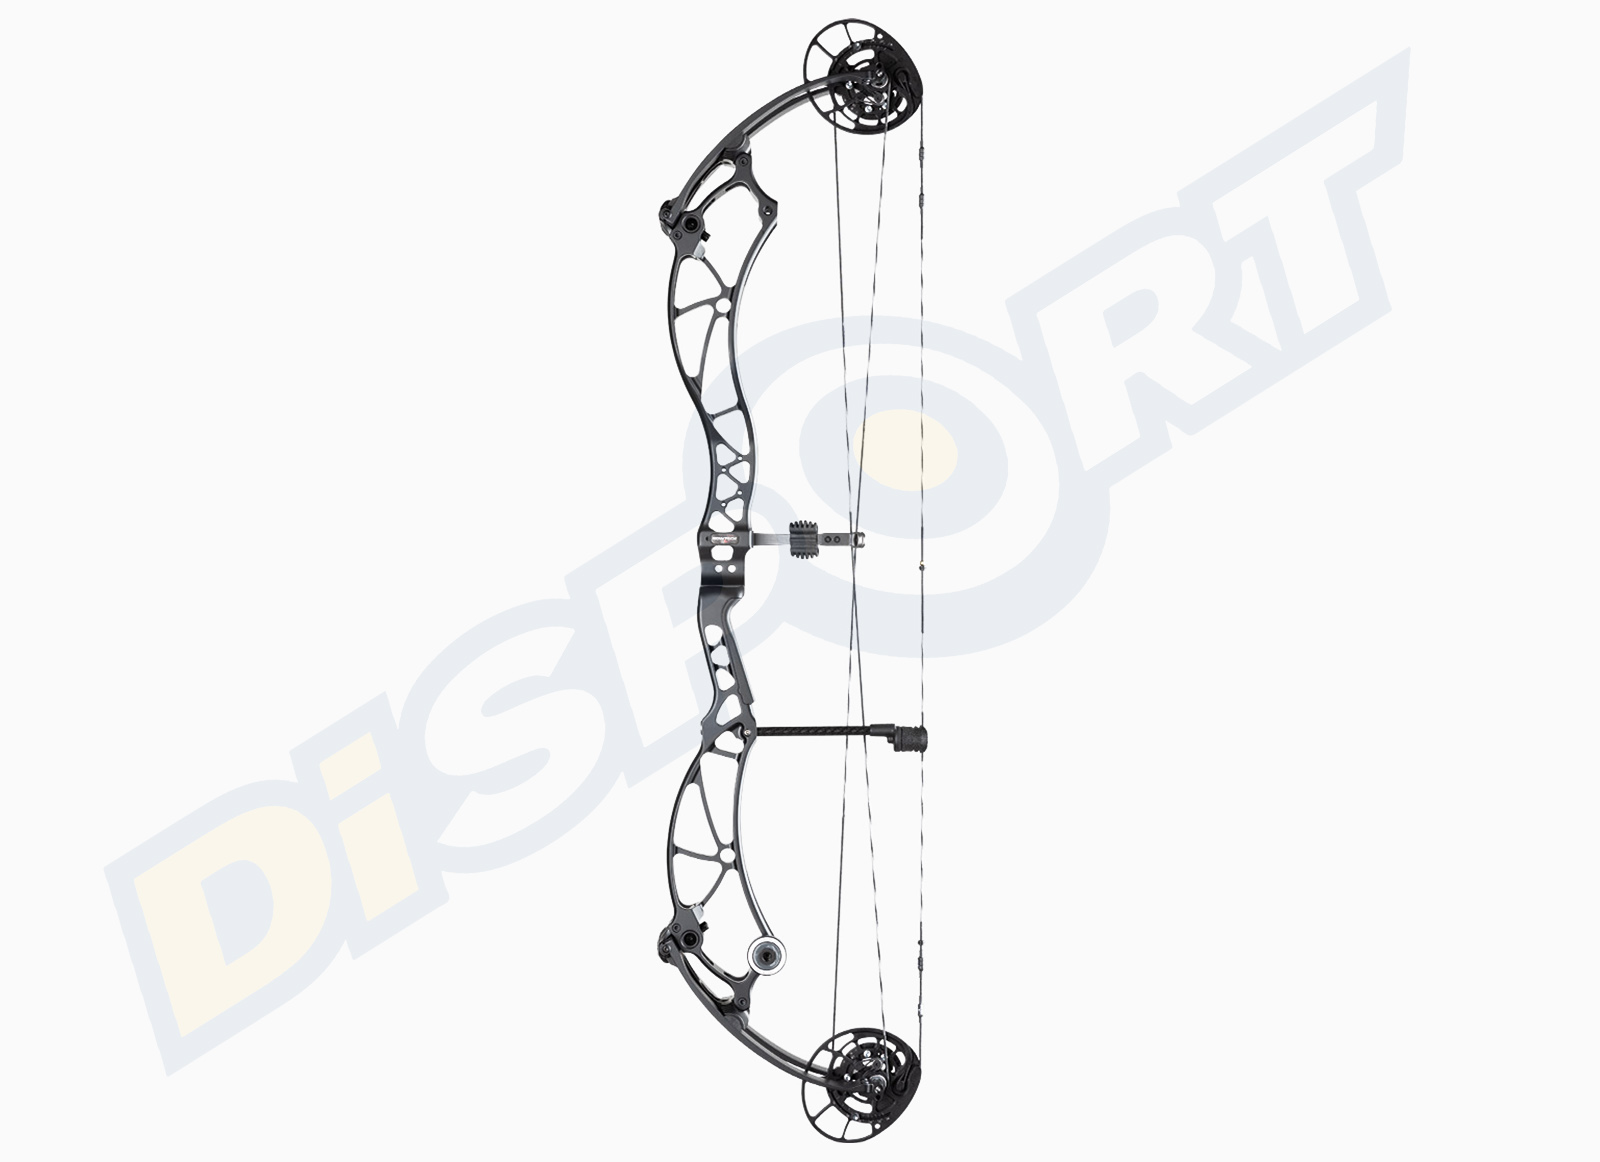 BOWTECH ARCO COMPOUND RECKONING 38